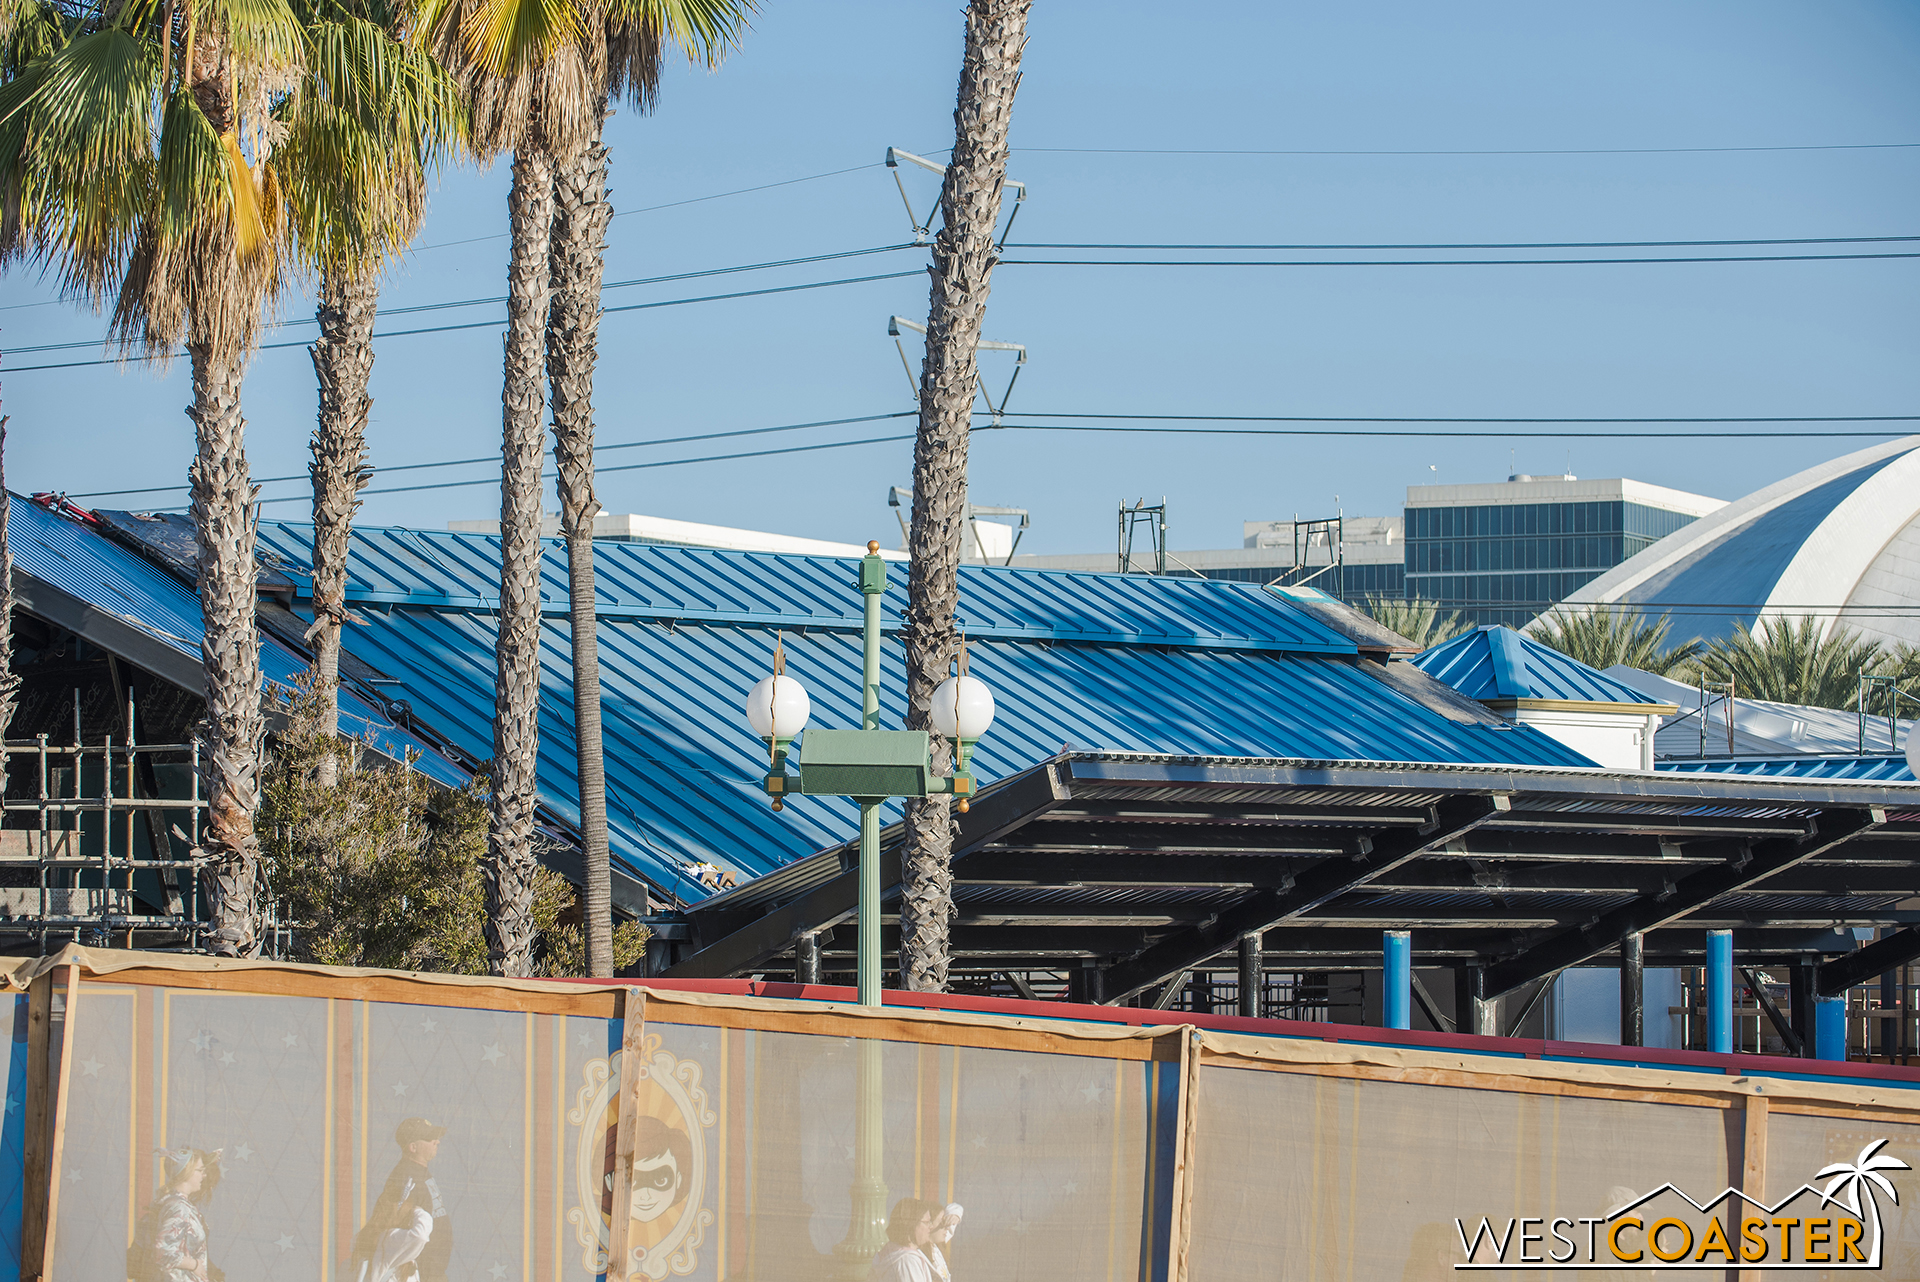 The chevron roof has been decked over too.